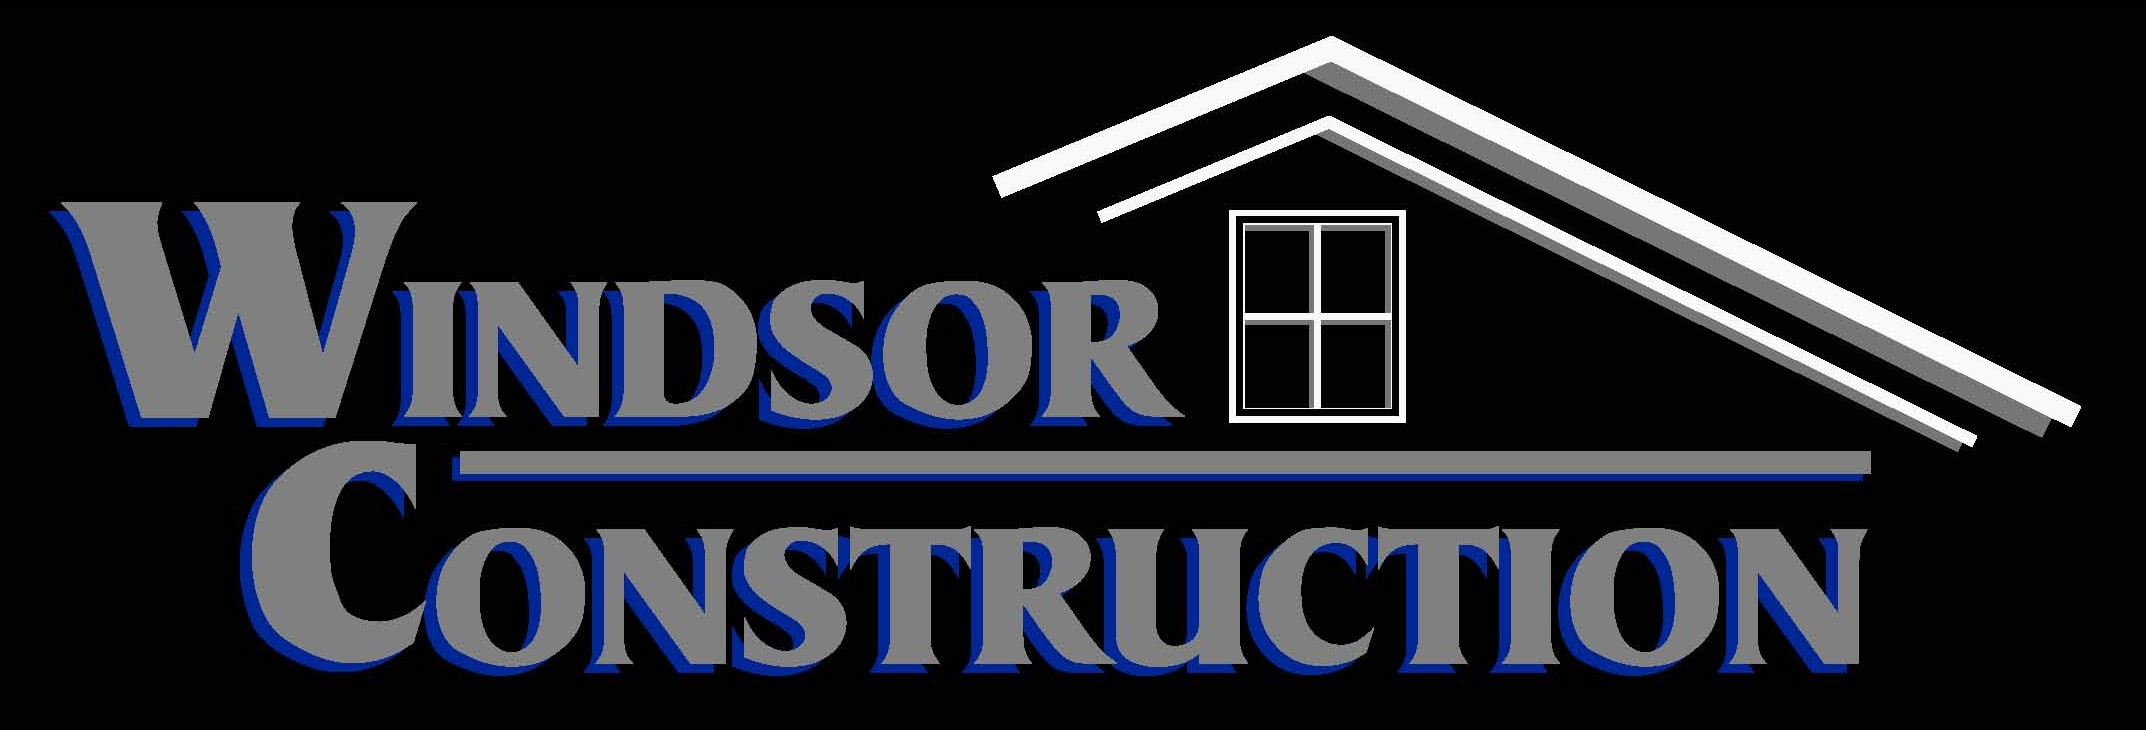 windsor_construction_logo